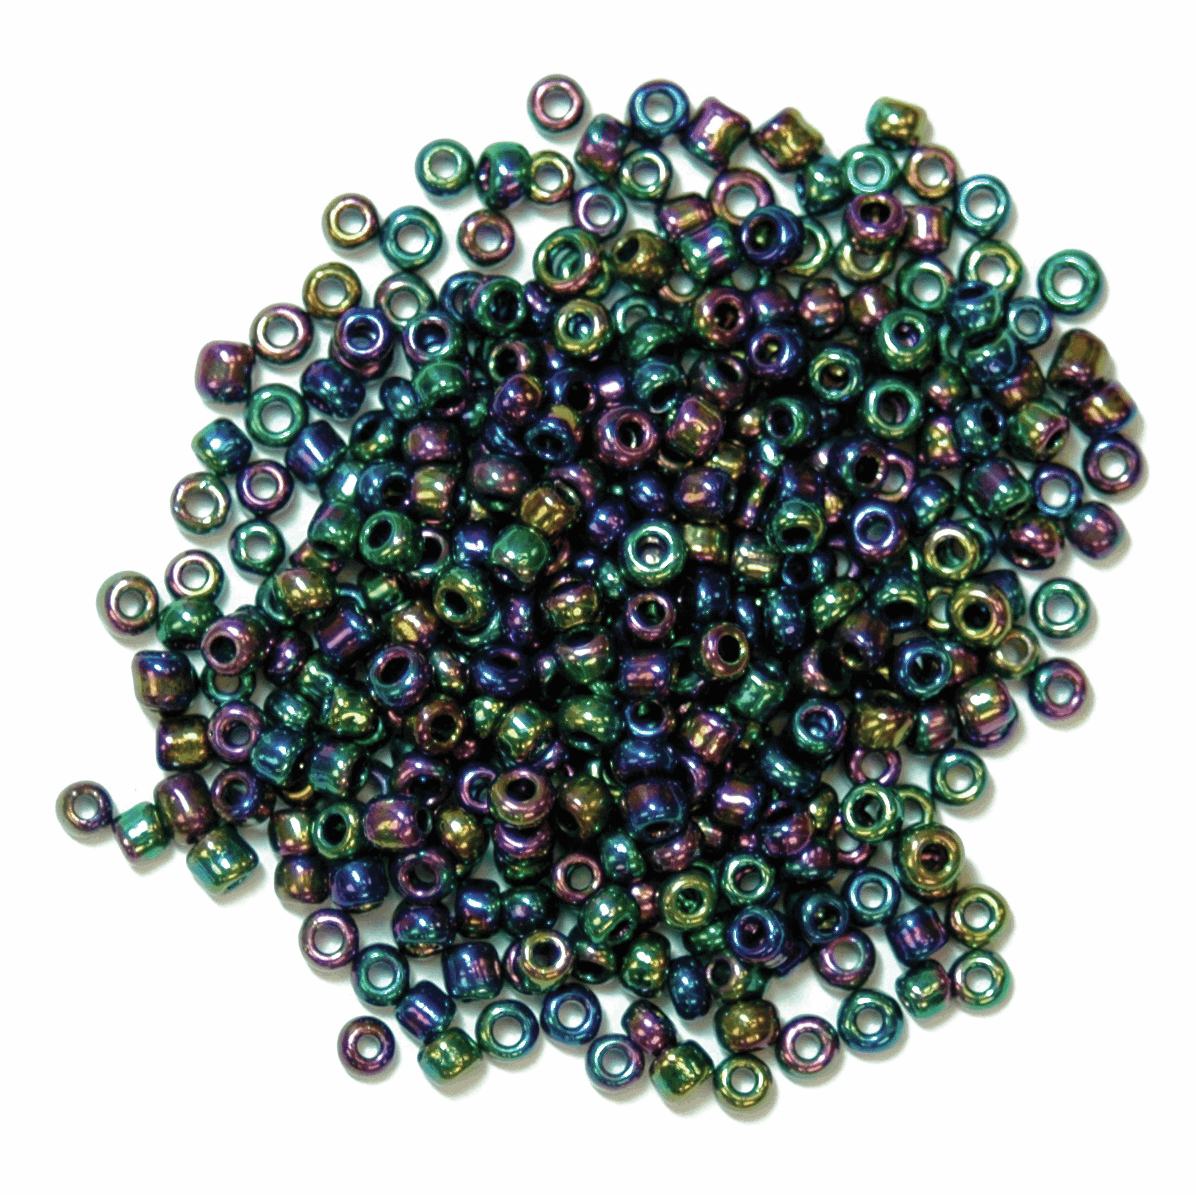 Trimits Rainbow Seed Beads - 8g Pack